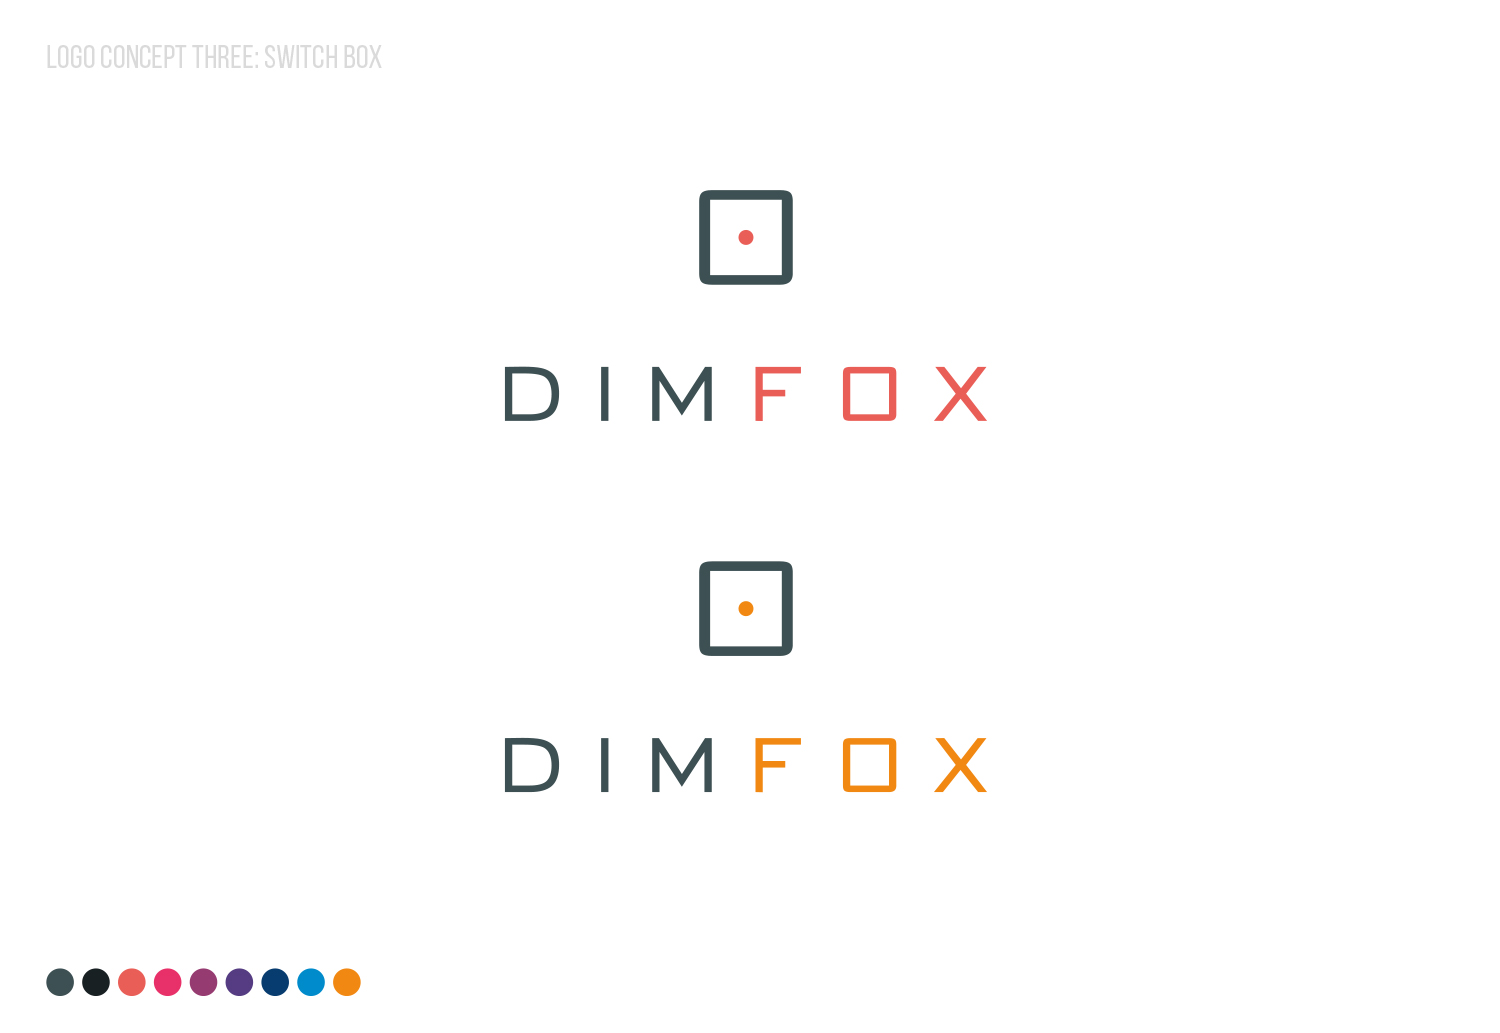 DIMFOX Logo Design -  Unused Concept 3